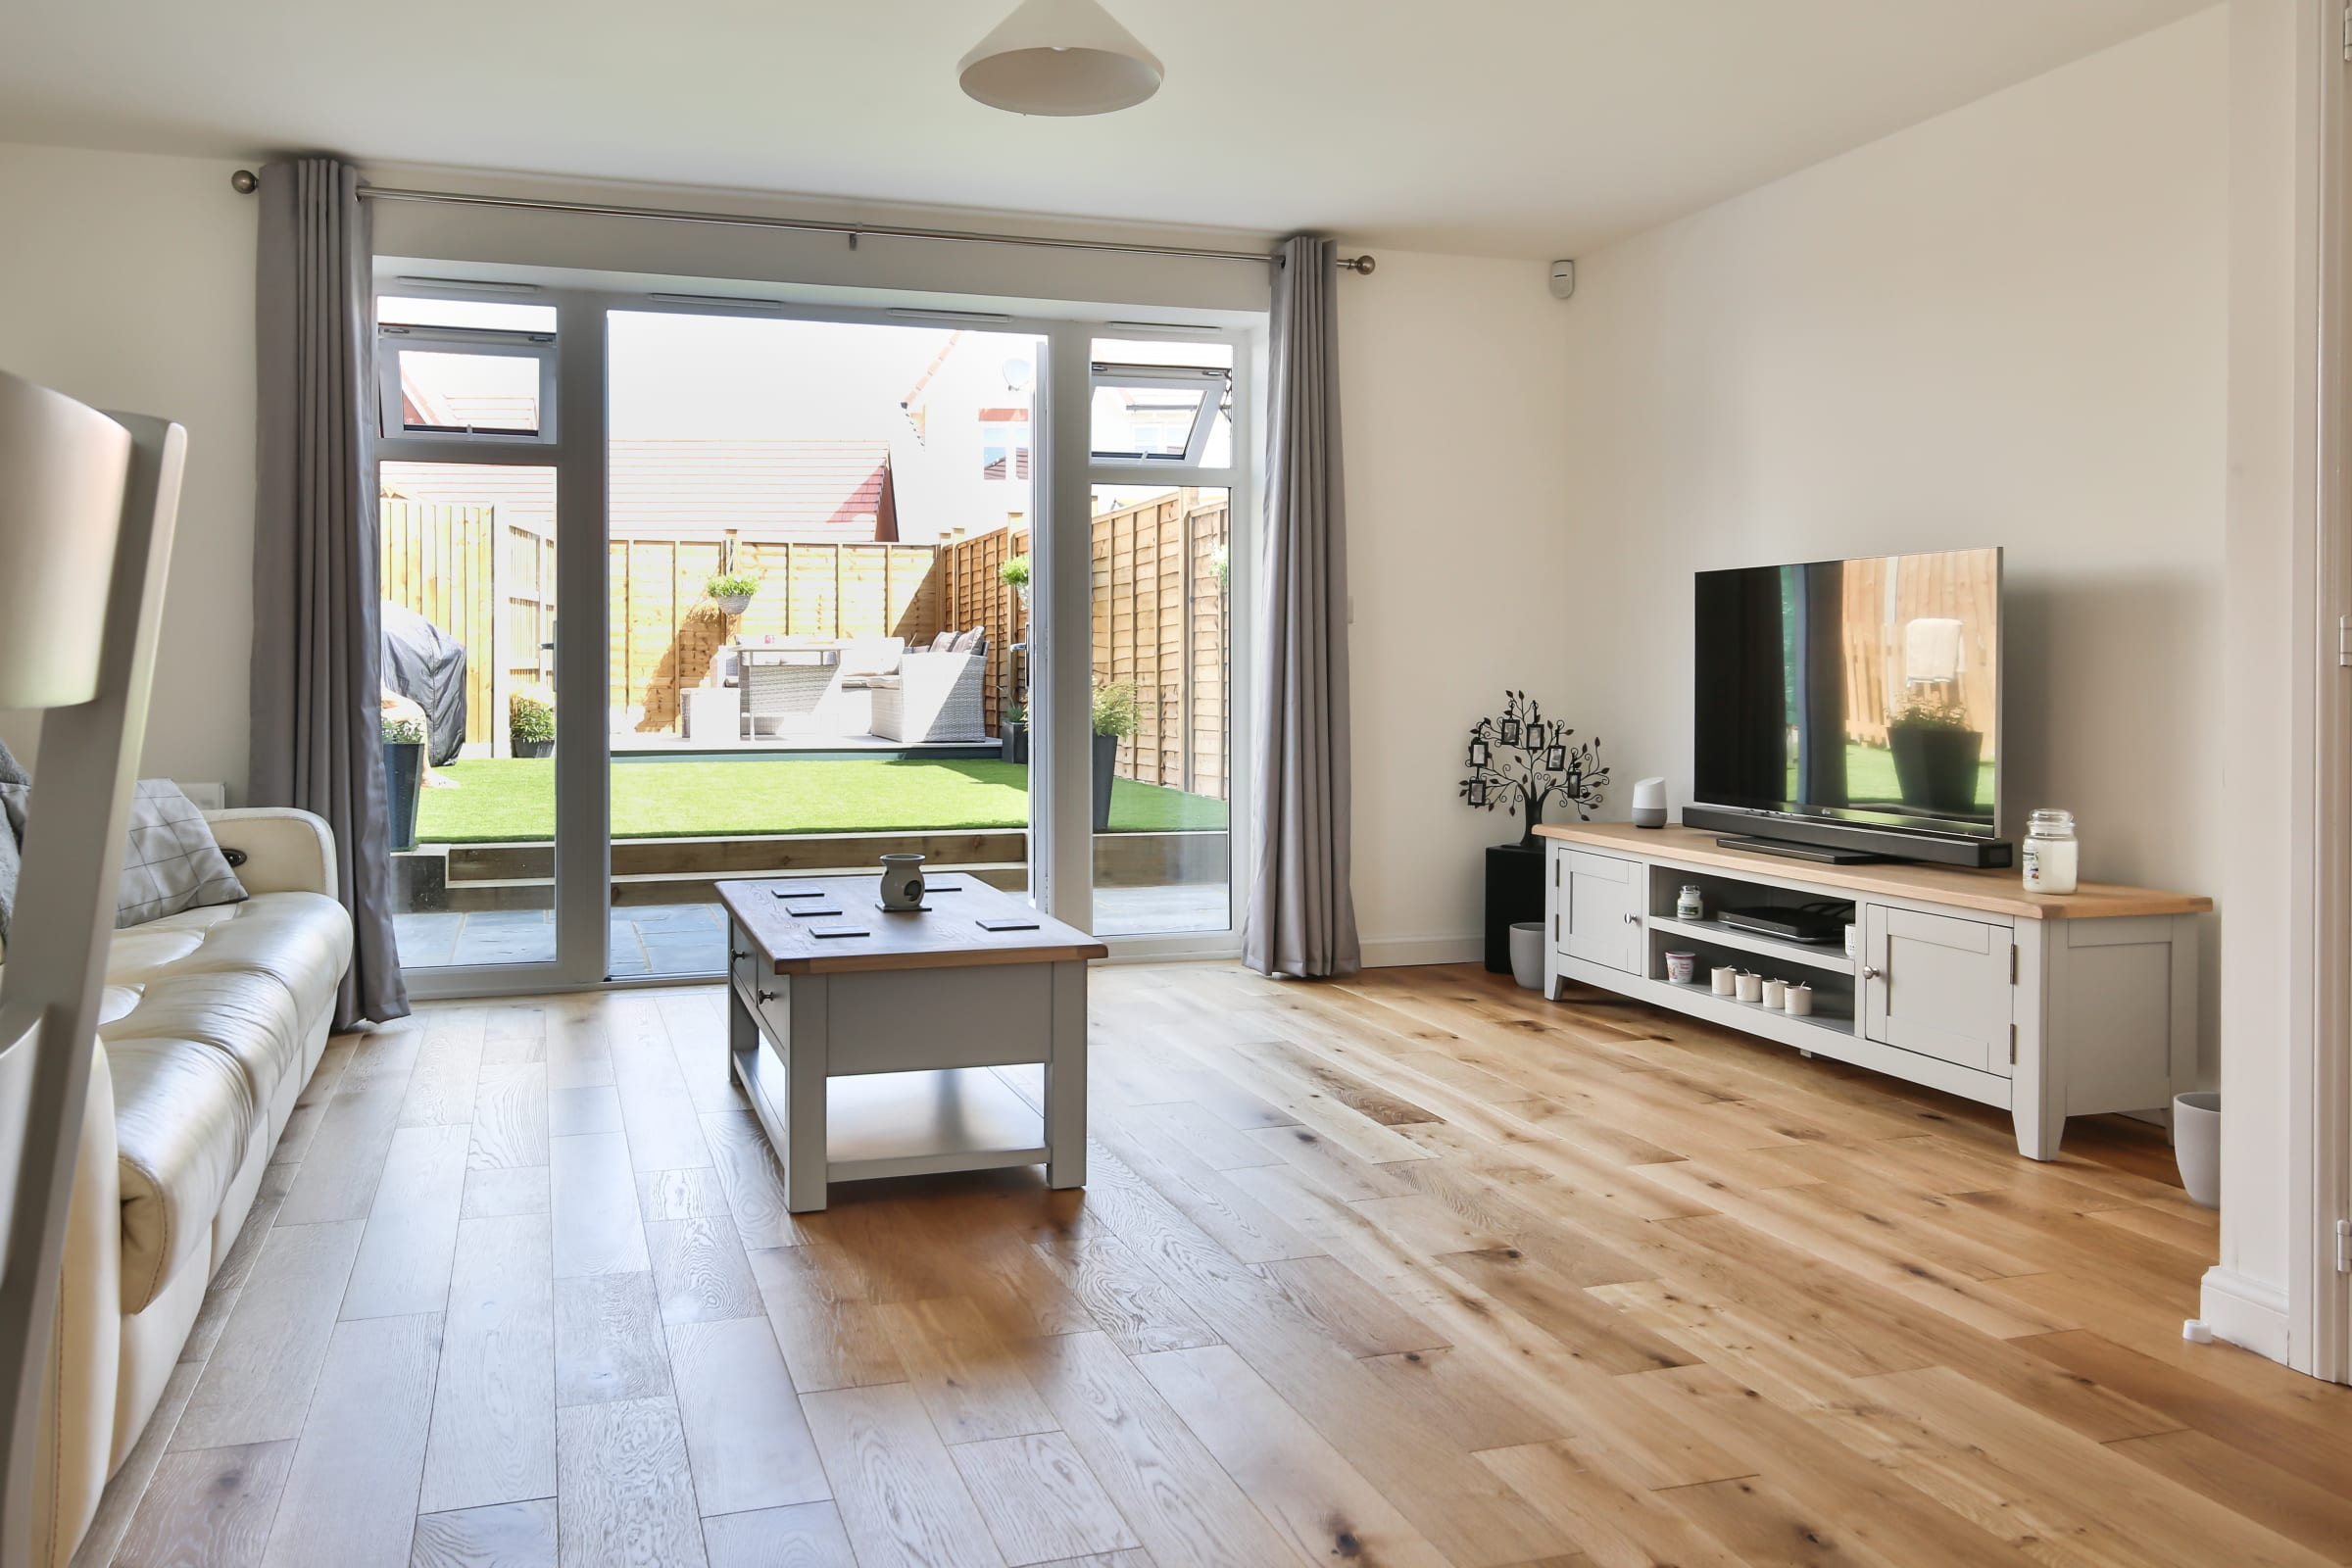 Swindon home with Eiger Petit wood floors 6